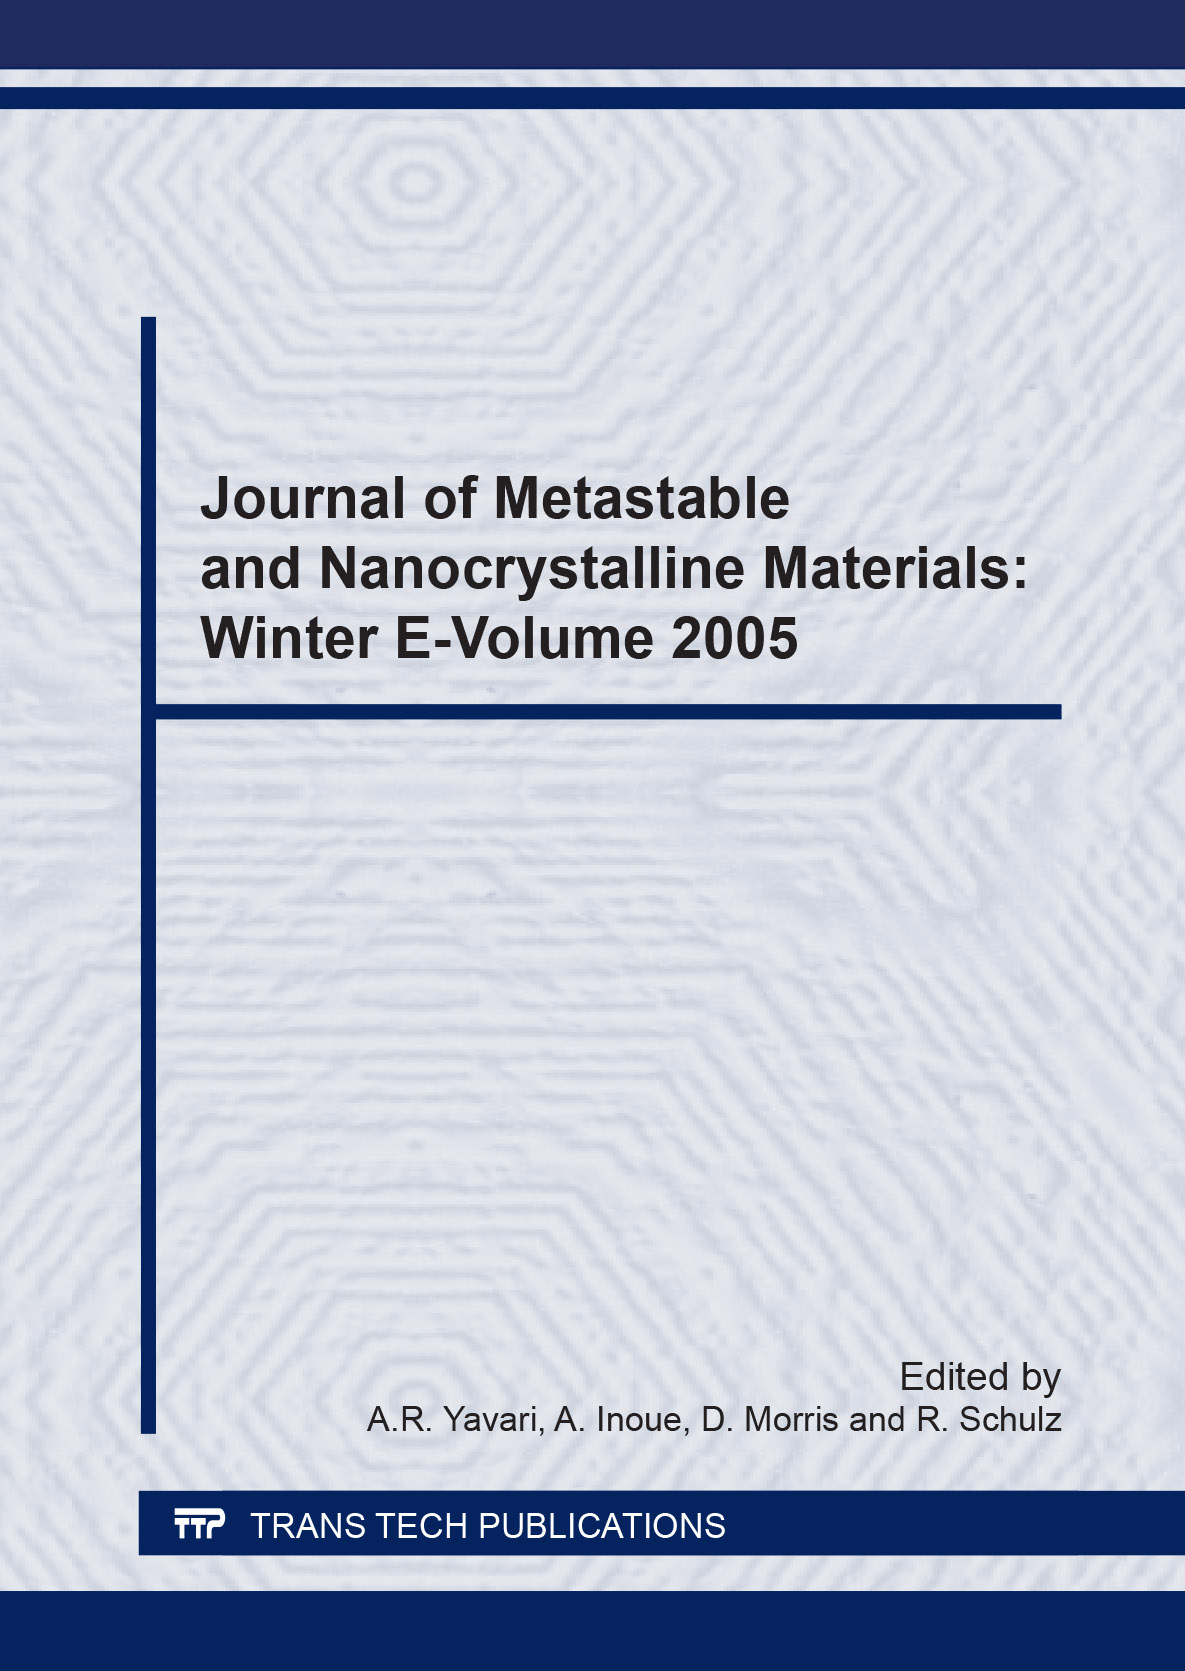 Journal of Metastable and Nanocrystalline Materials: Winter e-volume 2005